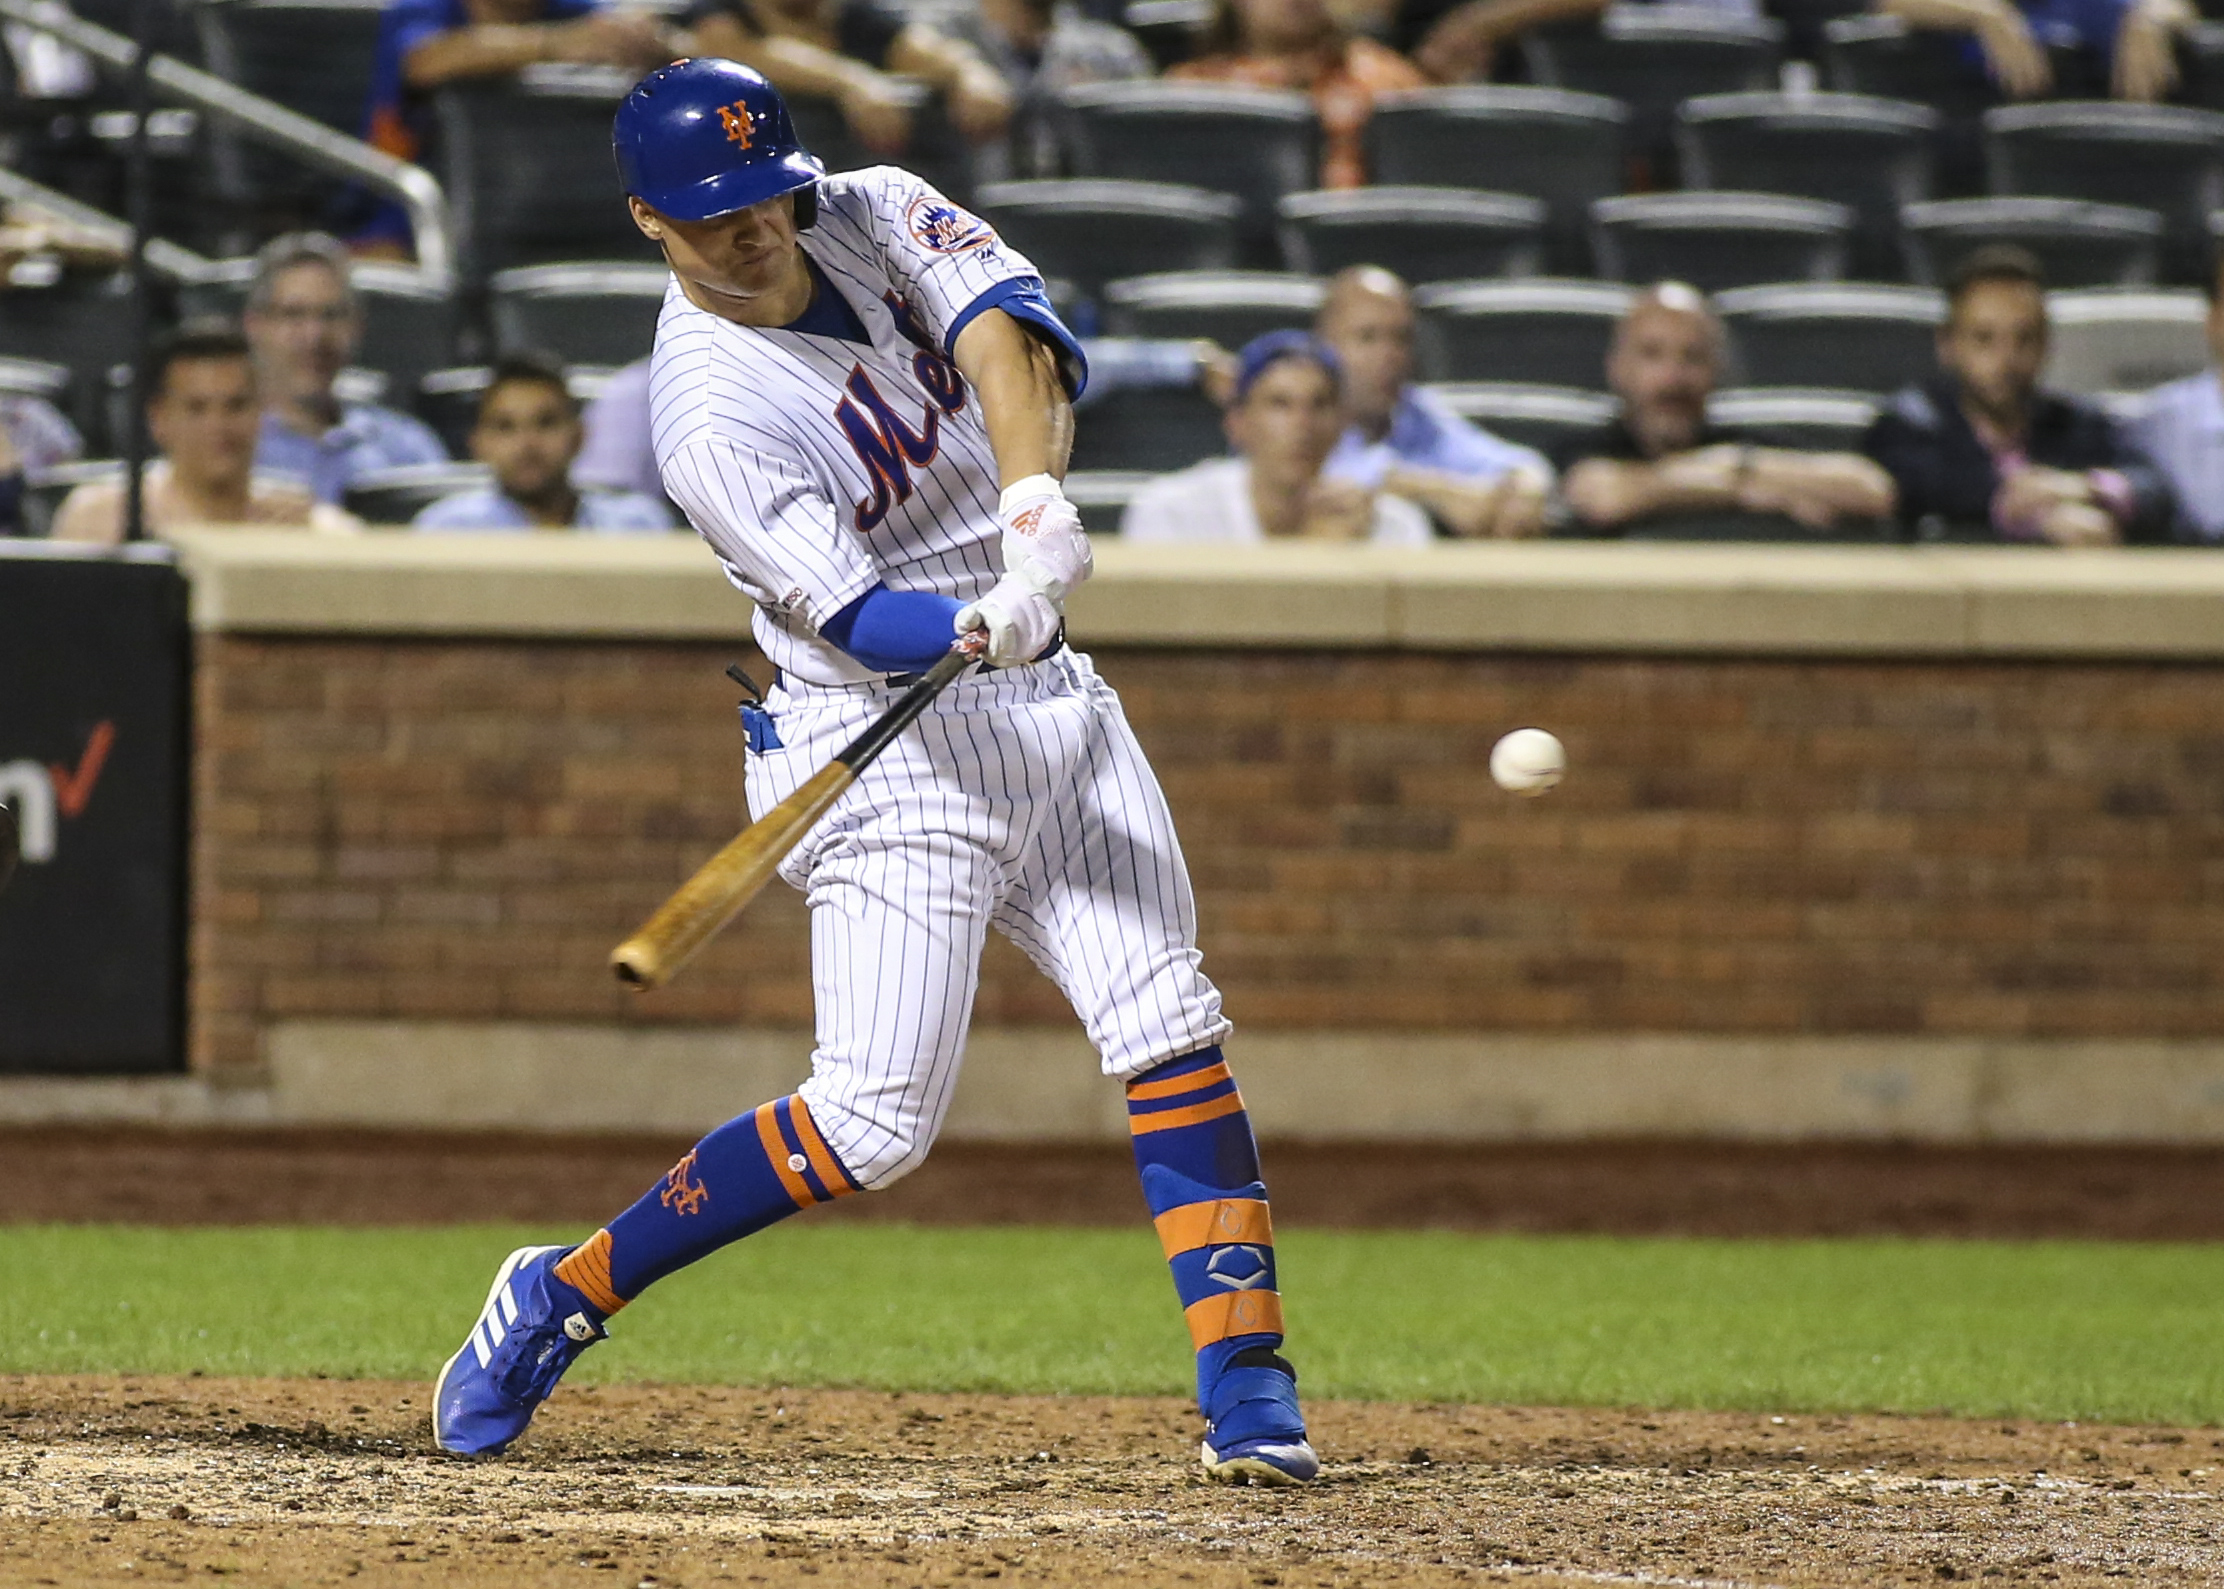 8/22/19 Game Preview: Cleveland Indians at New York Mets